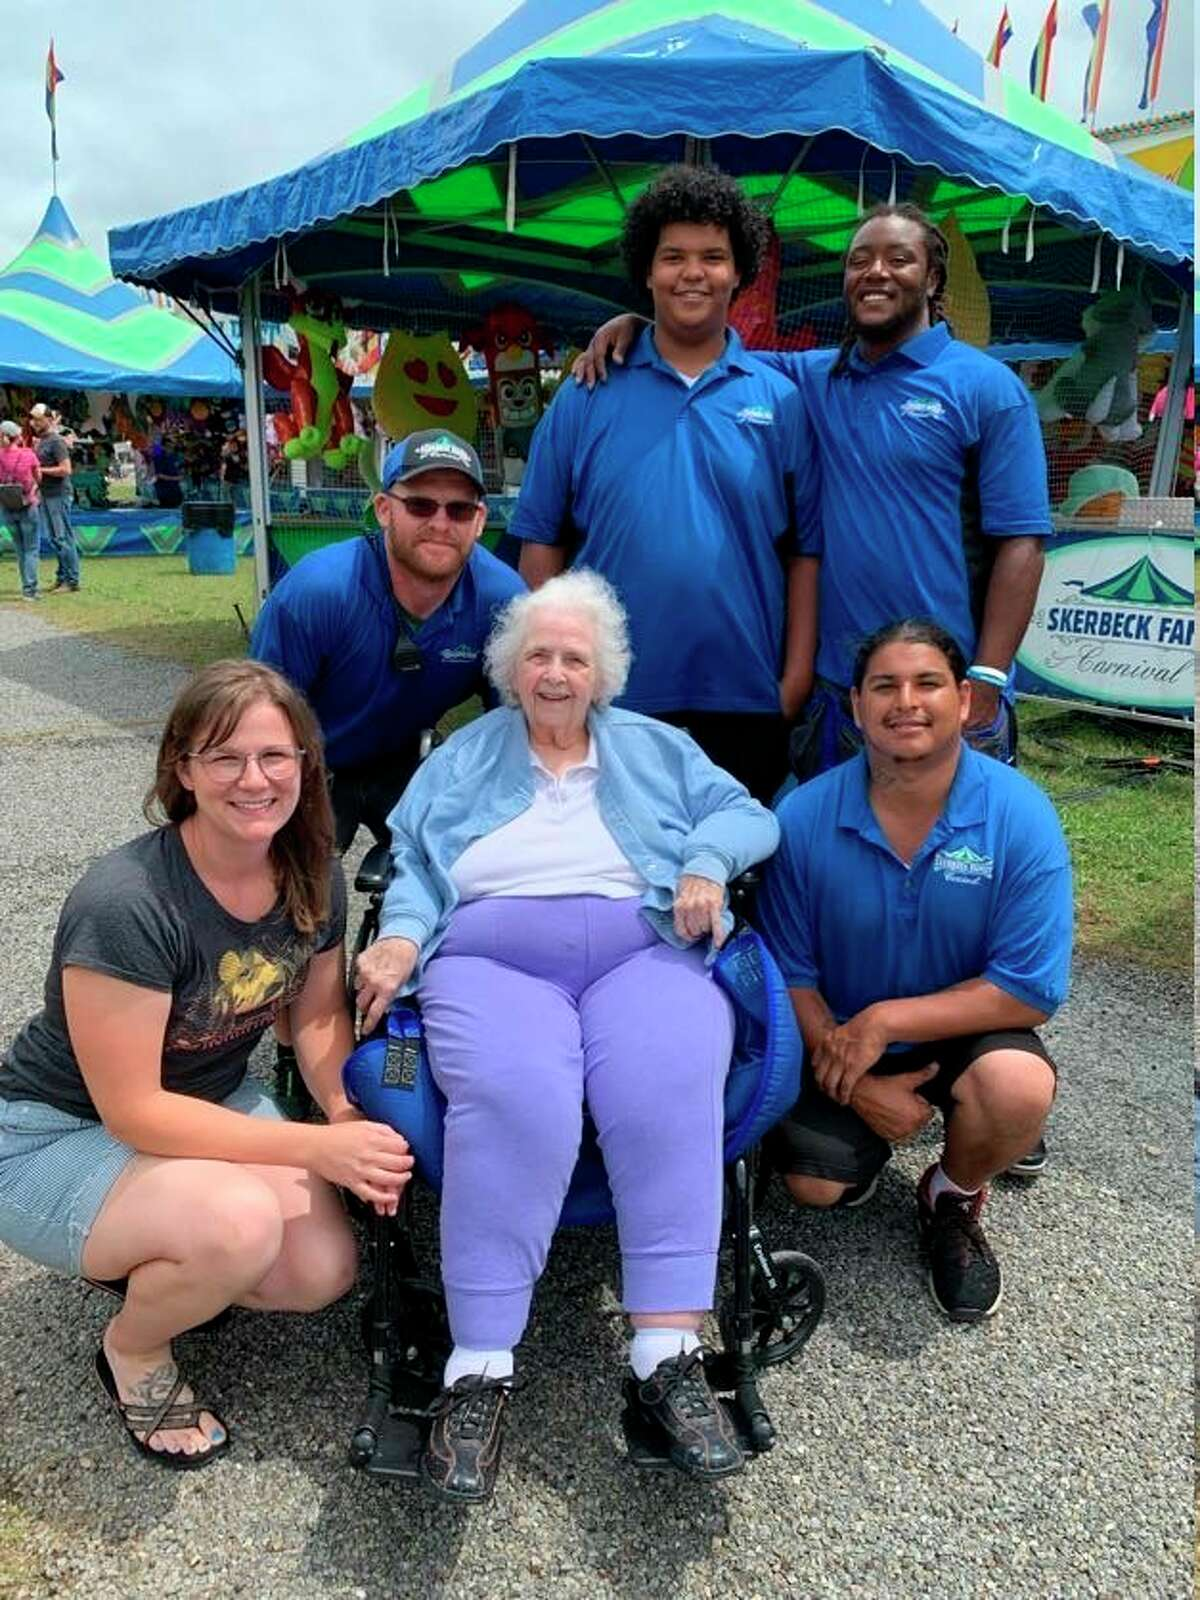 With the help of Skerbeck Family Carnival staff at the Mecosta County Fairgrounds, 95-year-old Mereda Bailey lived her longtime dream of riding the fair's colorful merry-go-round ride. (Courtesy/Nancy Stephan)